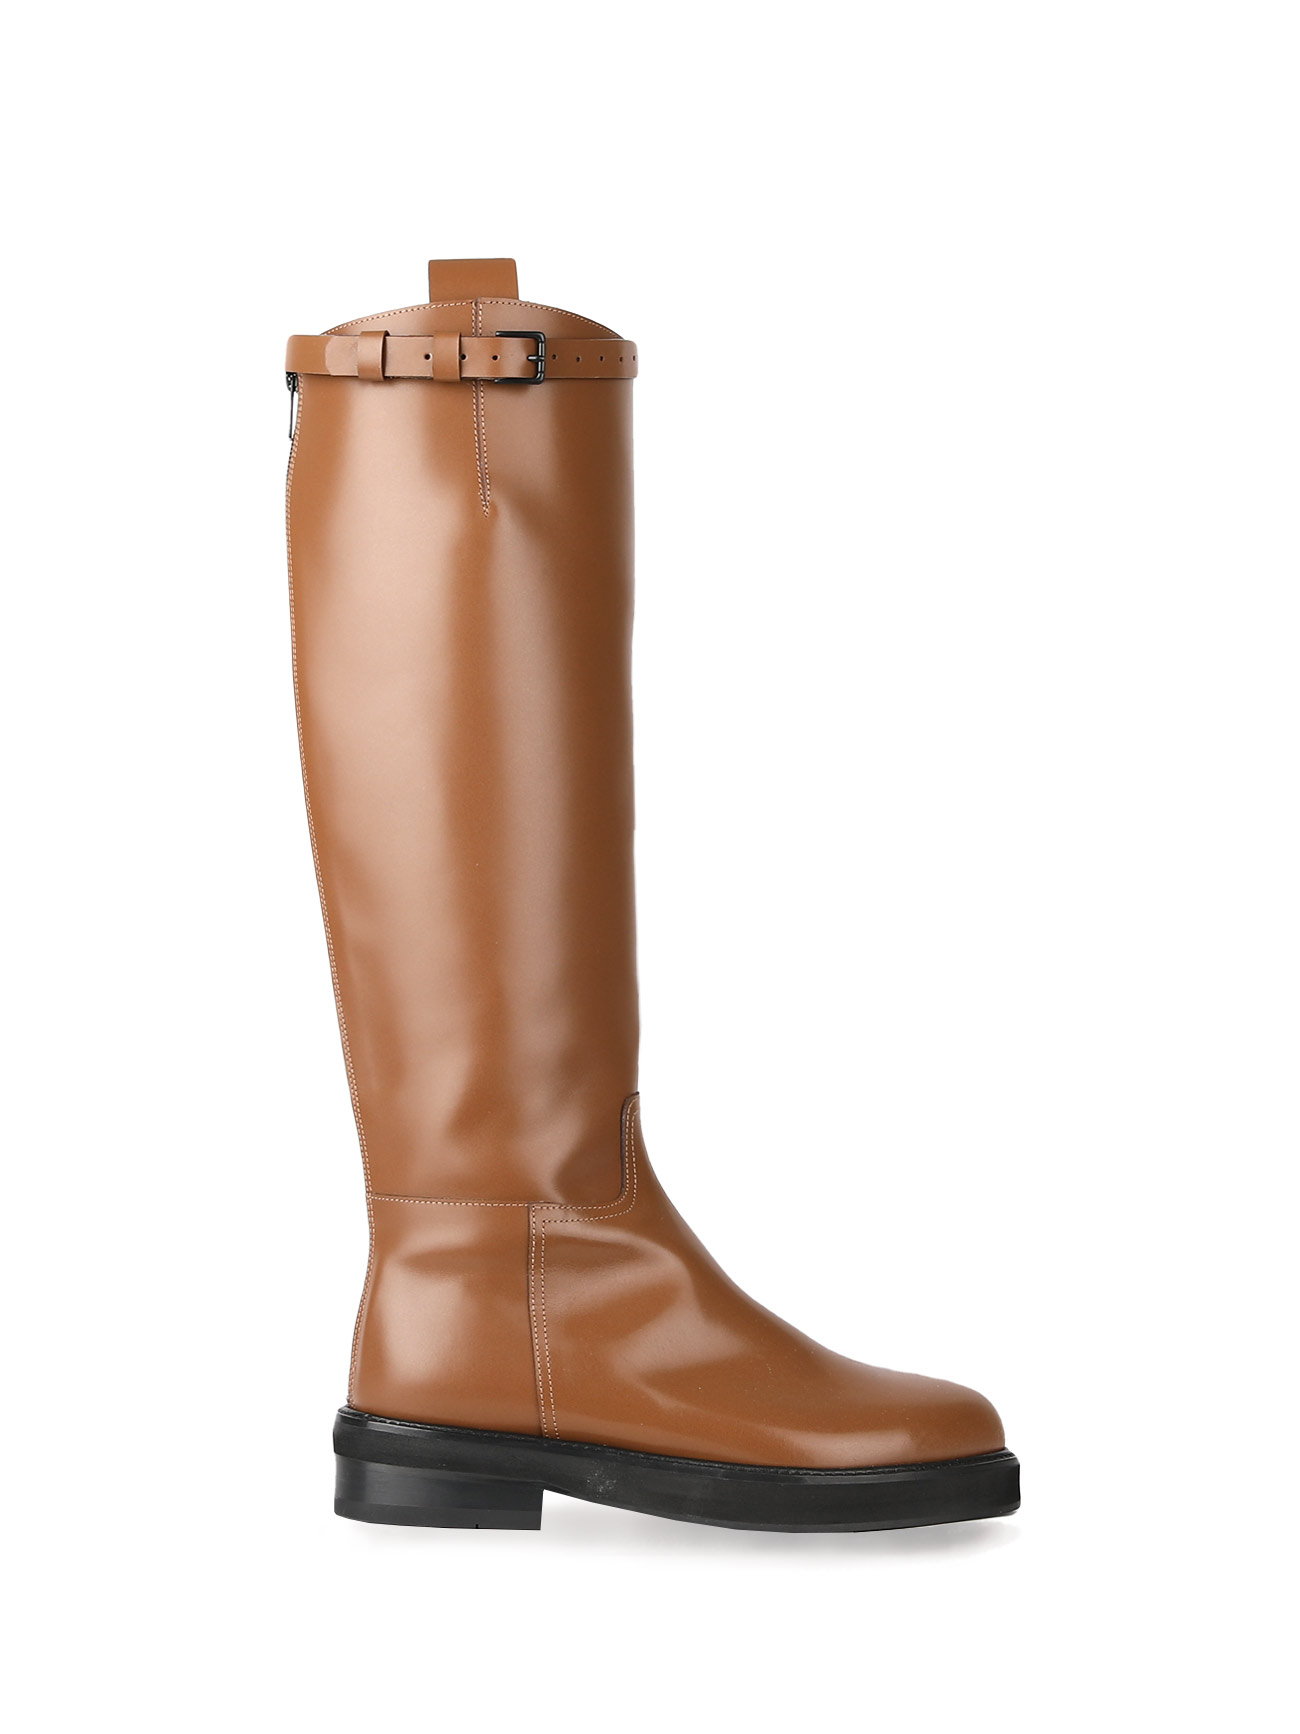 JOY BUCKLE-STRAP LEATHER BOOTS - MILK BROWN (4cm)